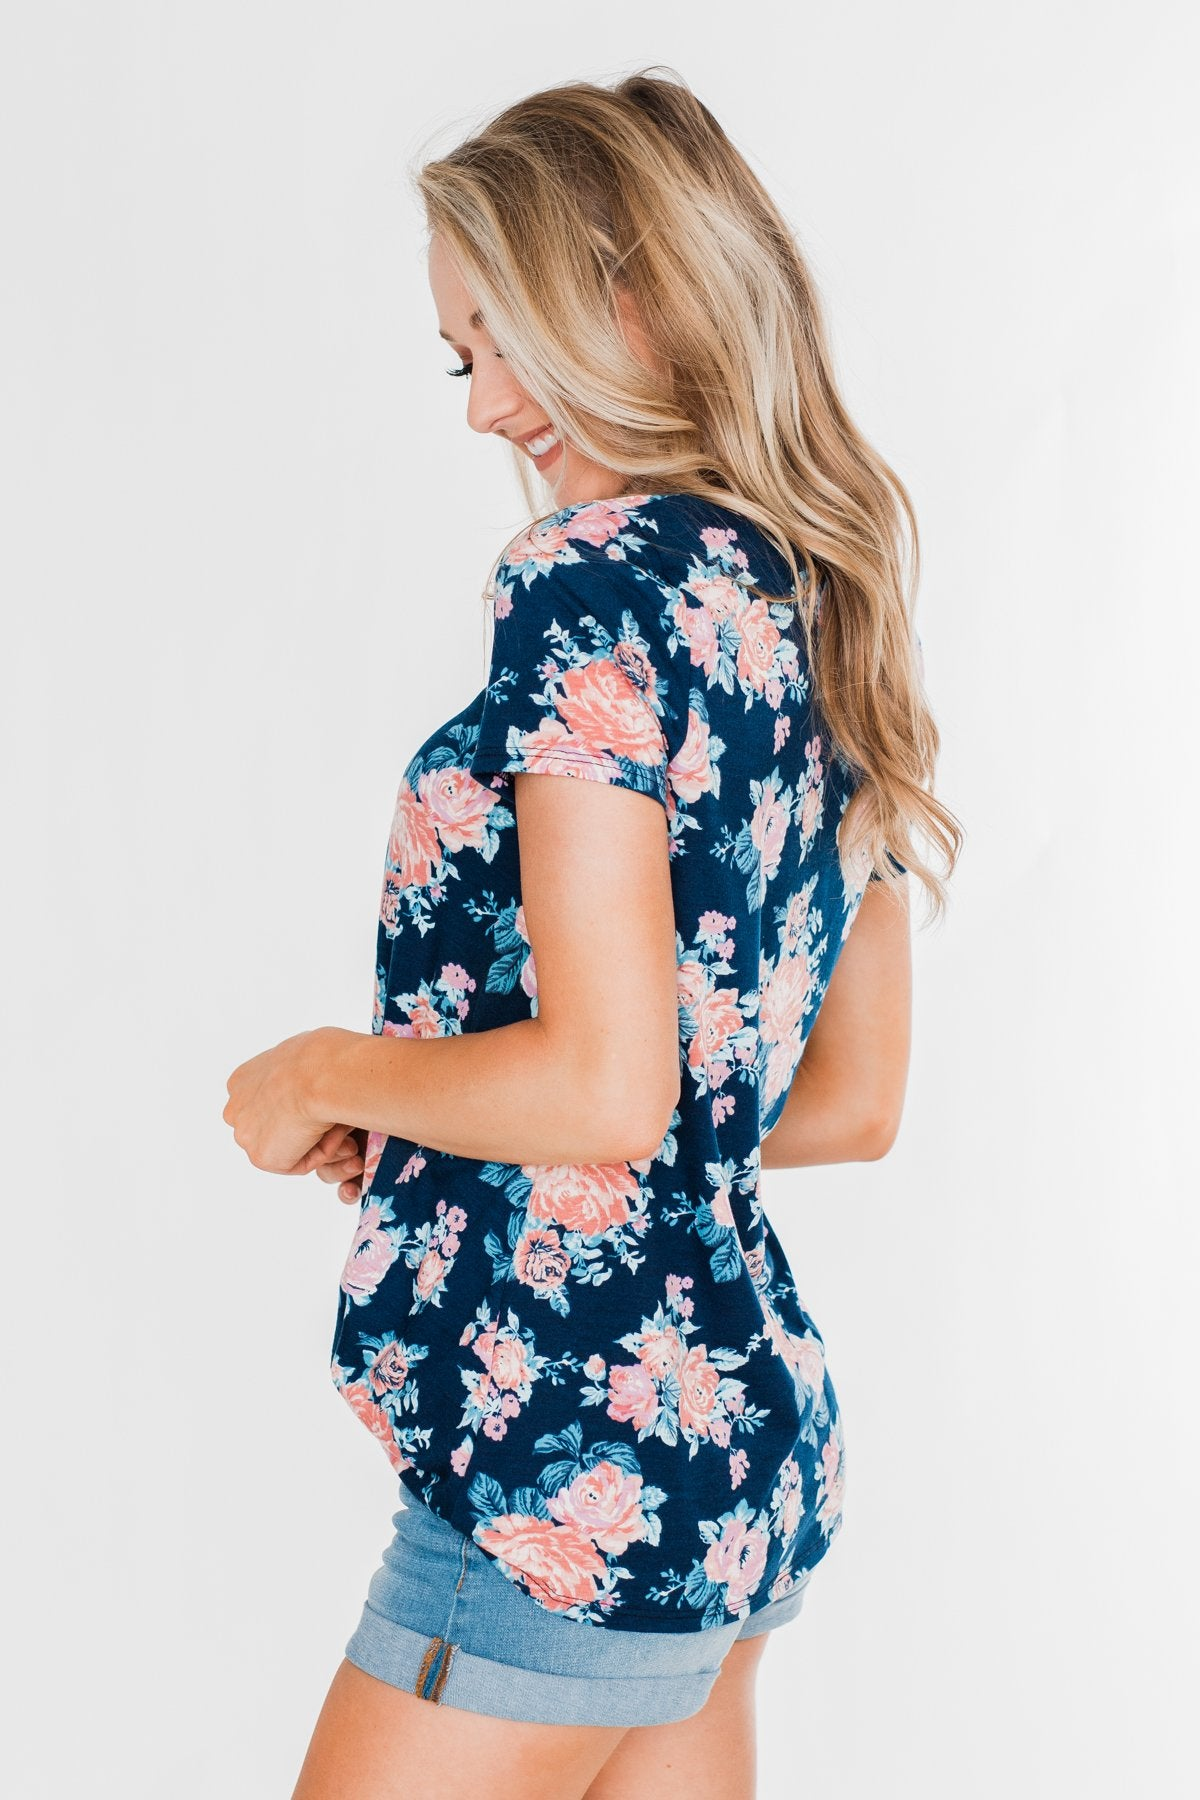 Sing With Me Floral Short Sleeve Knot Top- Navy